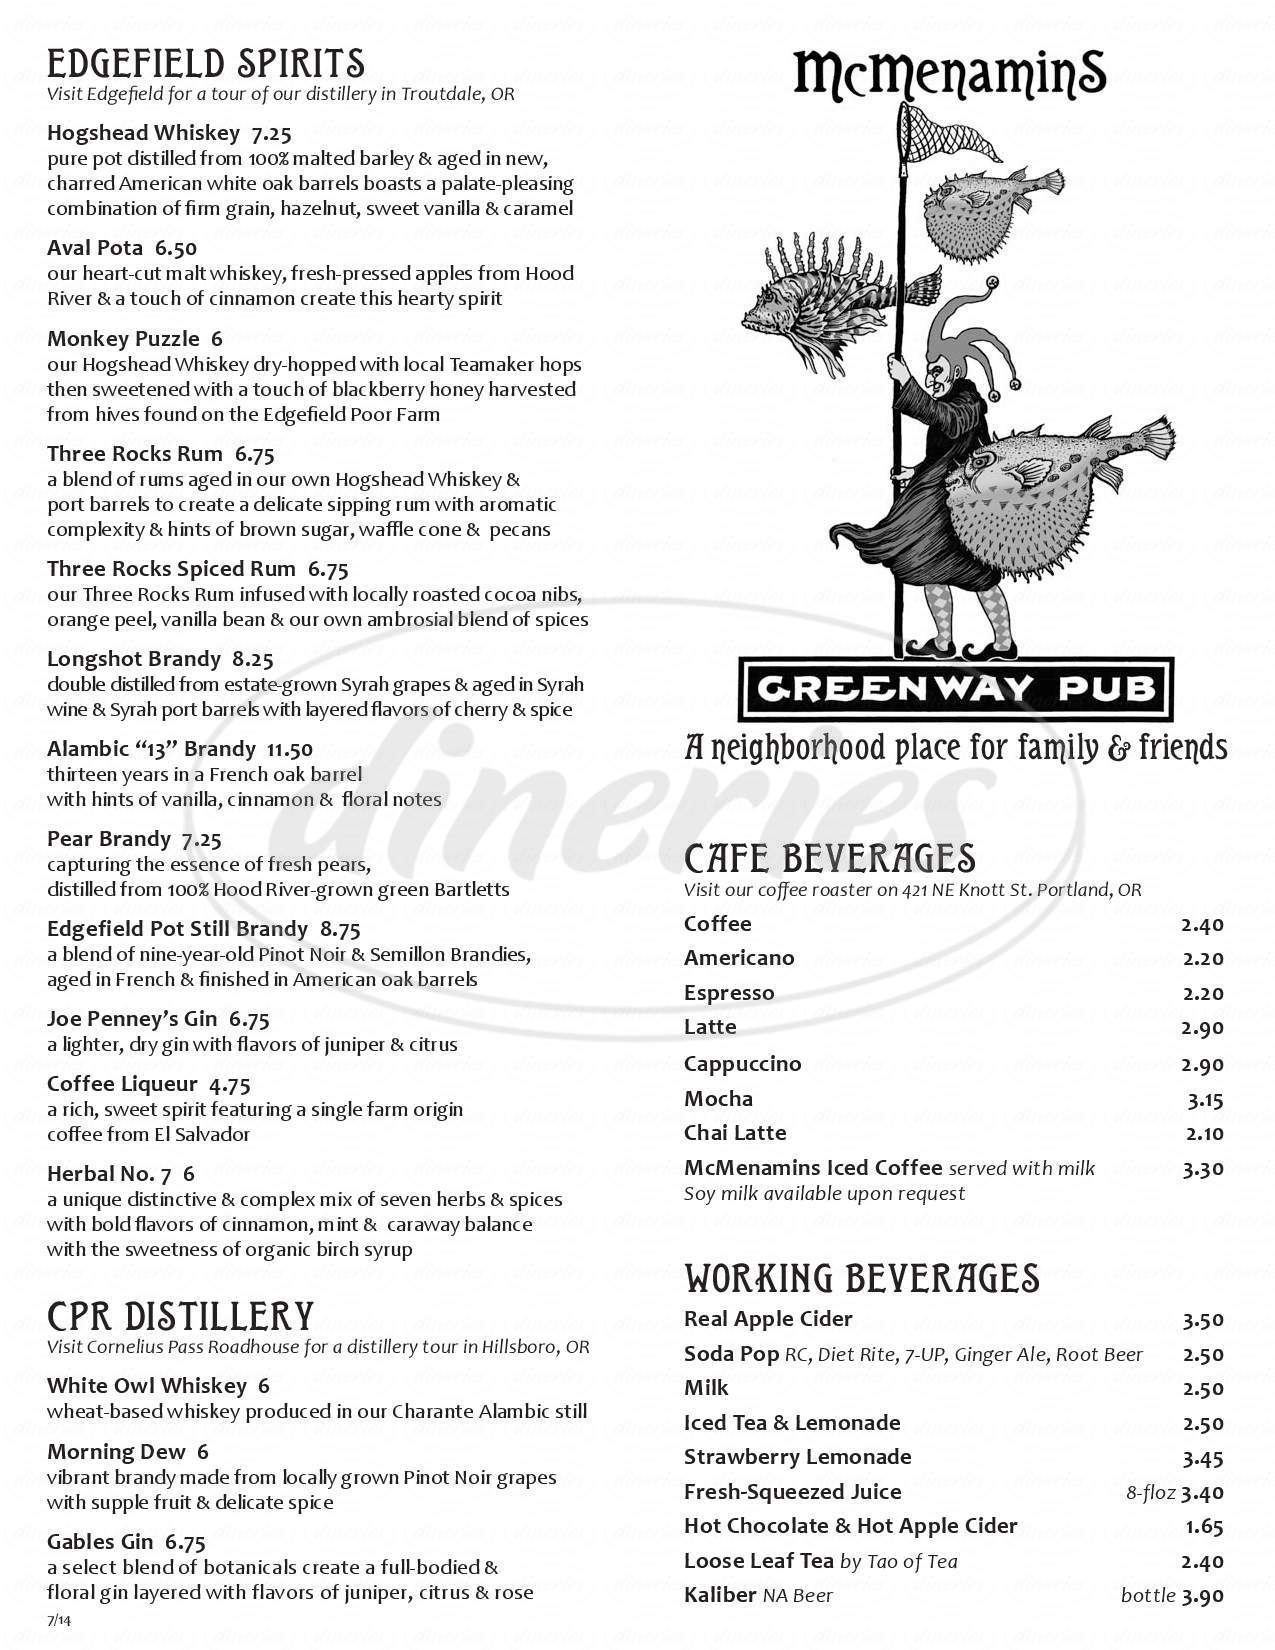 menu for McMenamins Greenway Pub